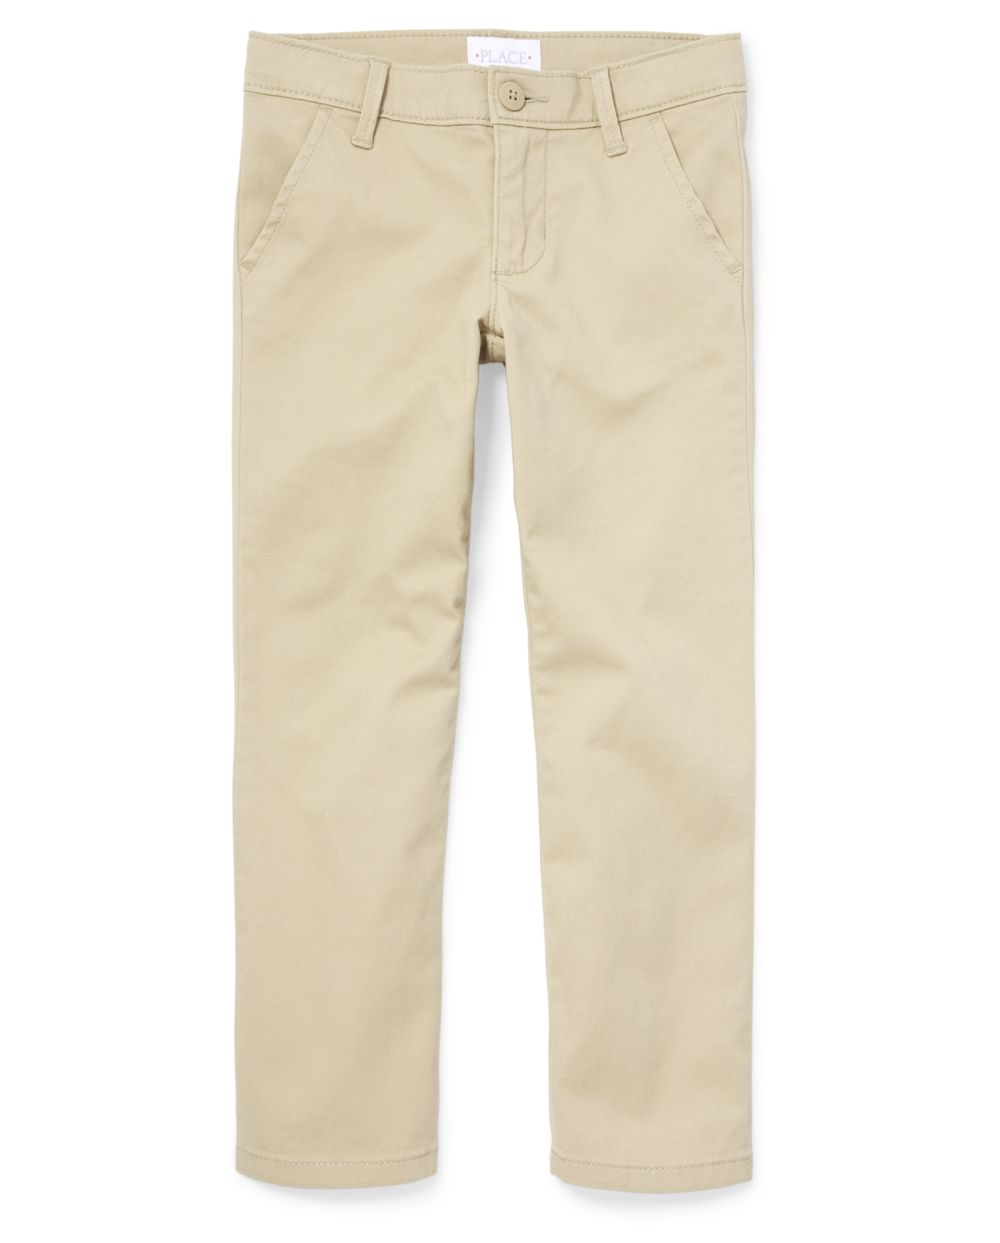 Girls Uniform Stain And Wrinkle Resistant Skinny Perfect Pants